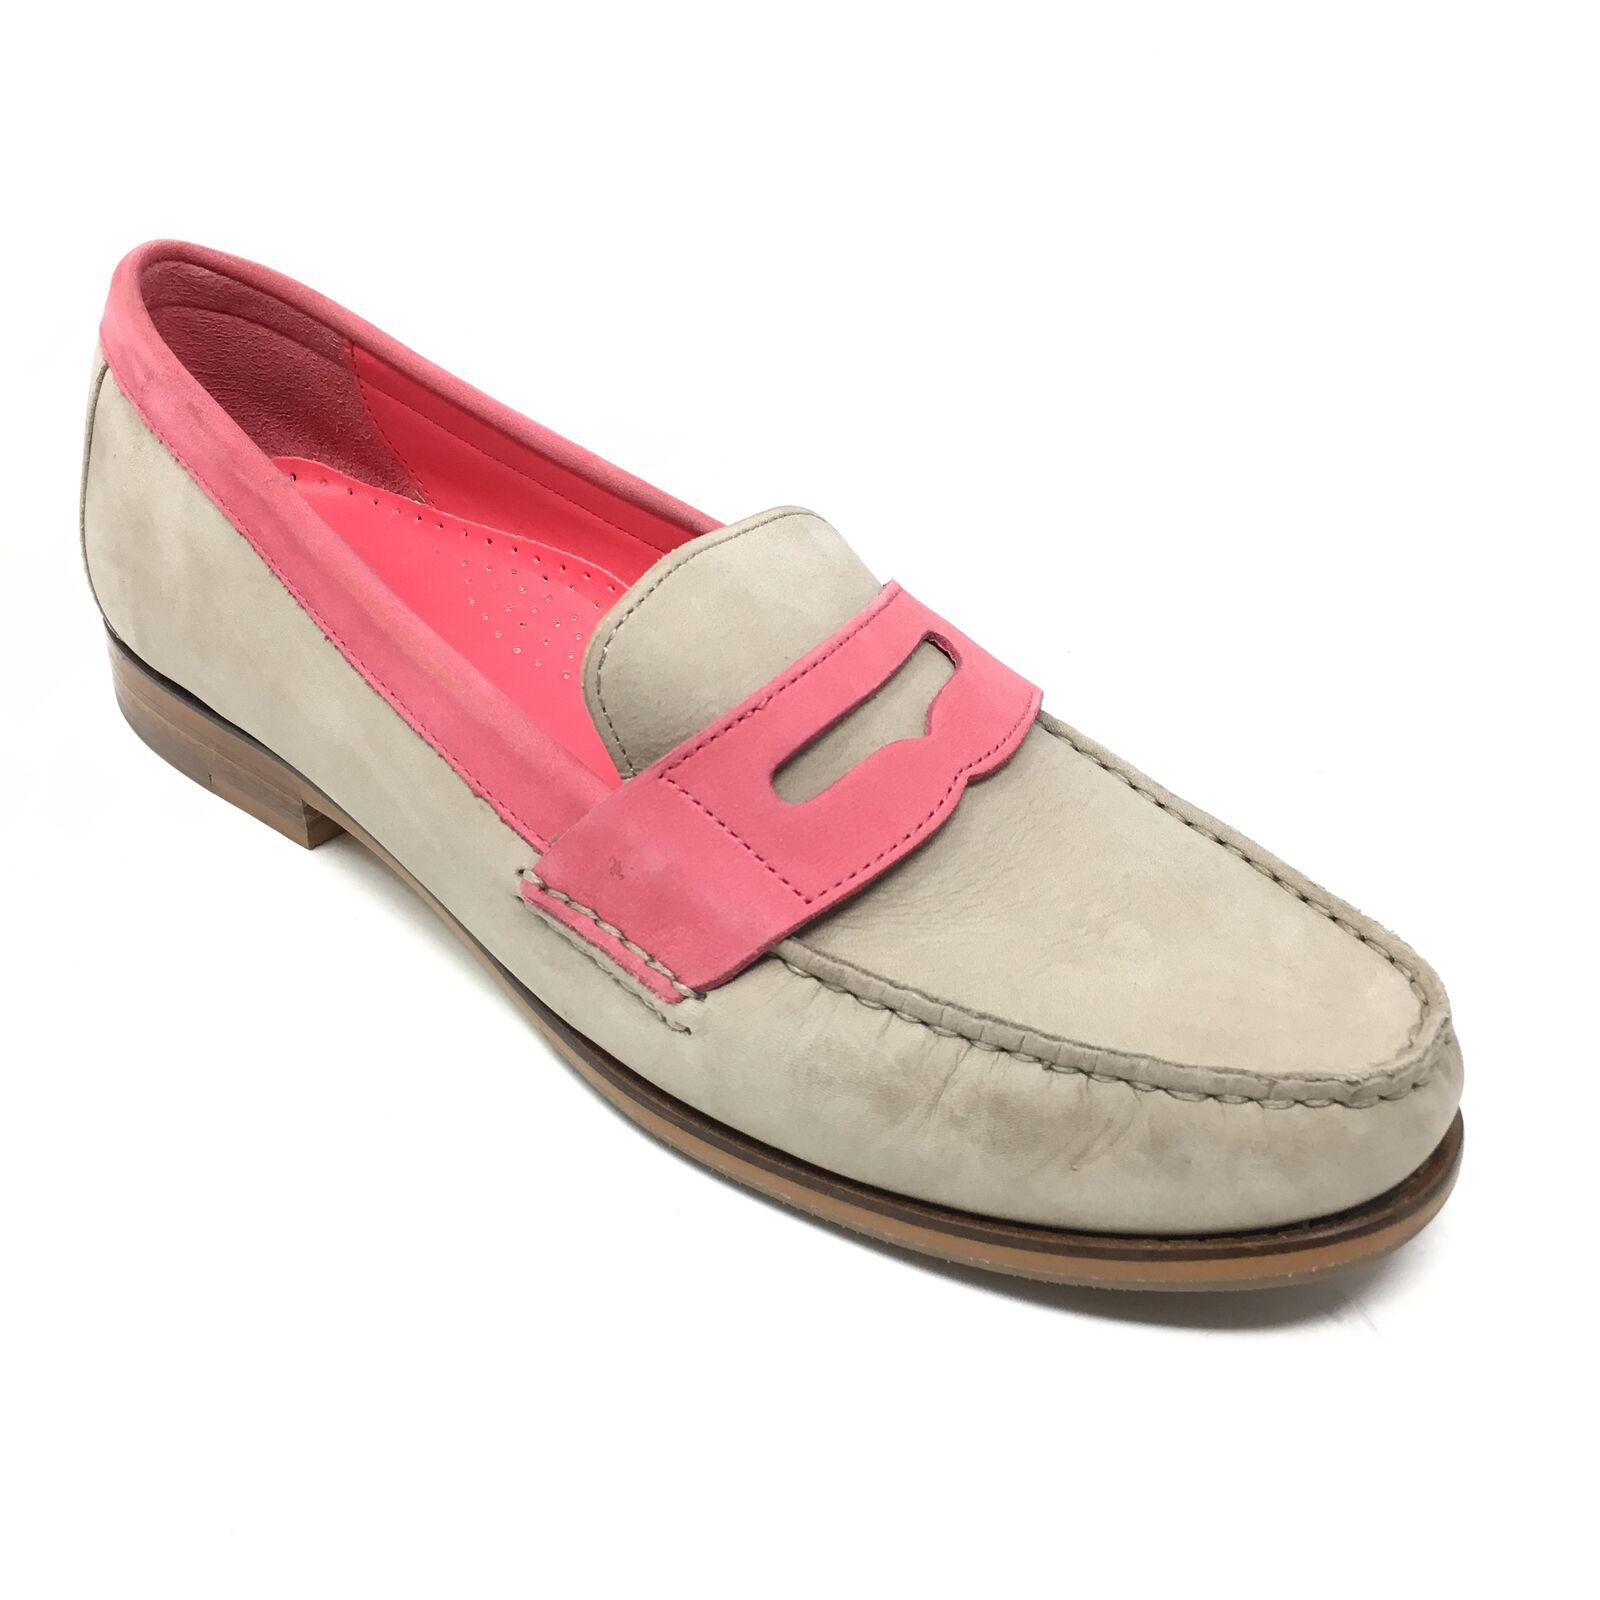 Women's Cole Haan Alexa Penny Loafers shoes Size 8.5B Tan Pink Leather Career A1